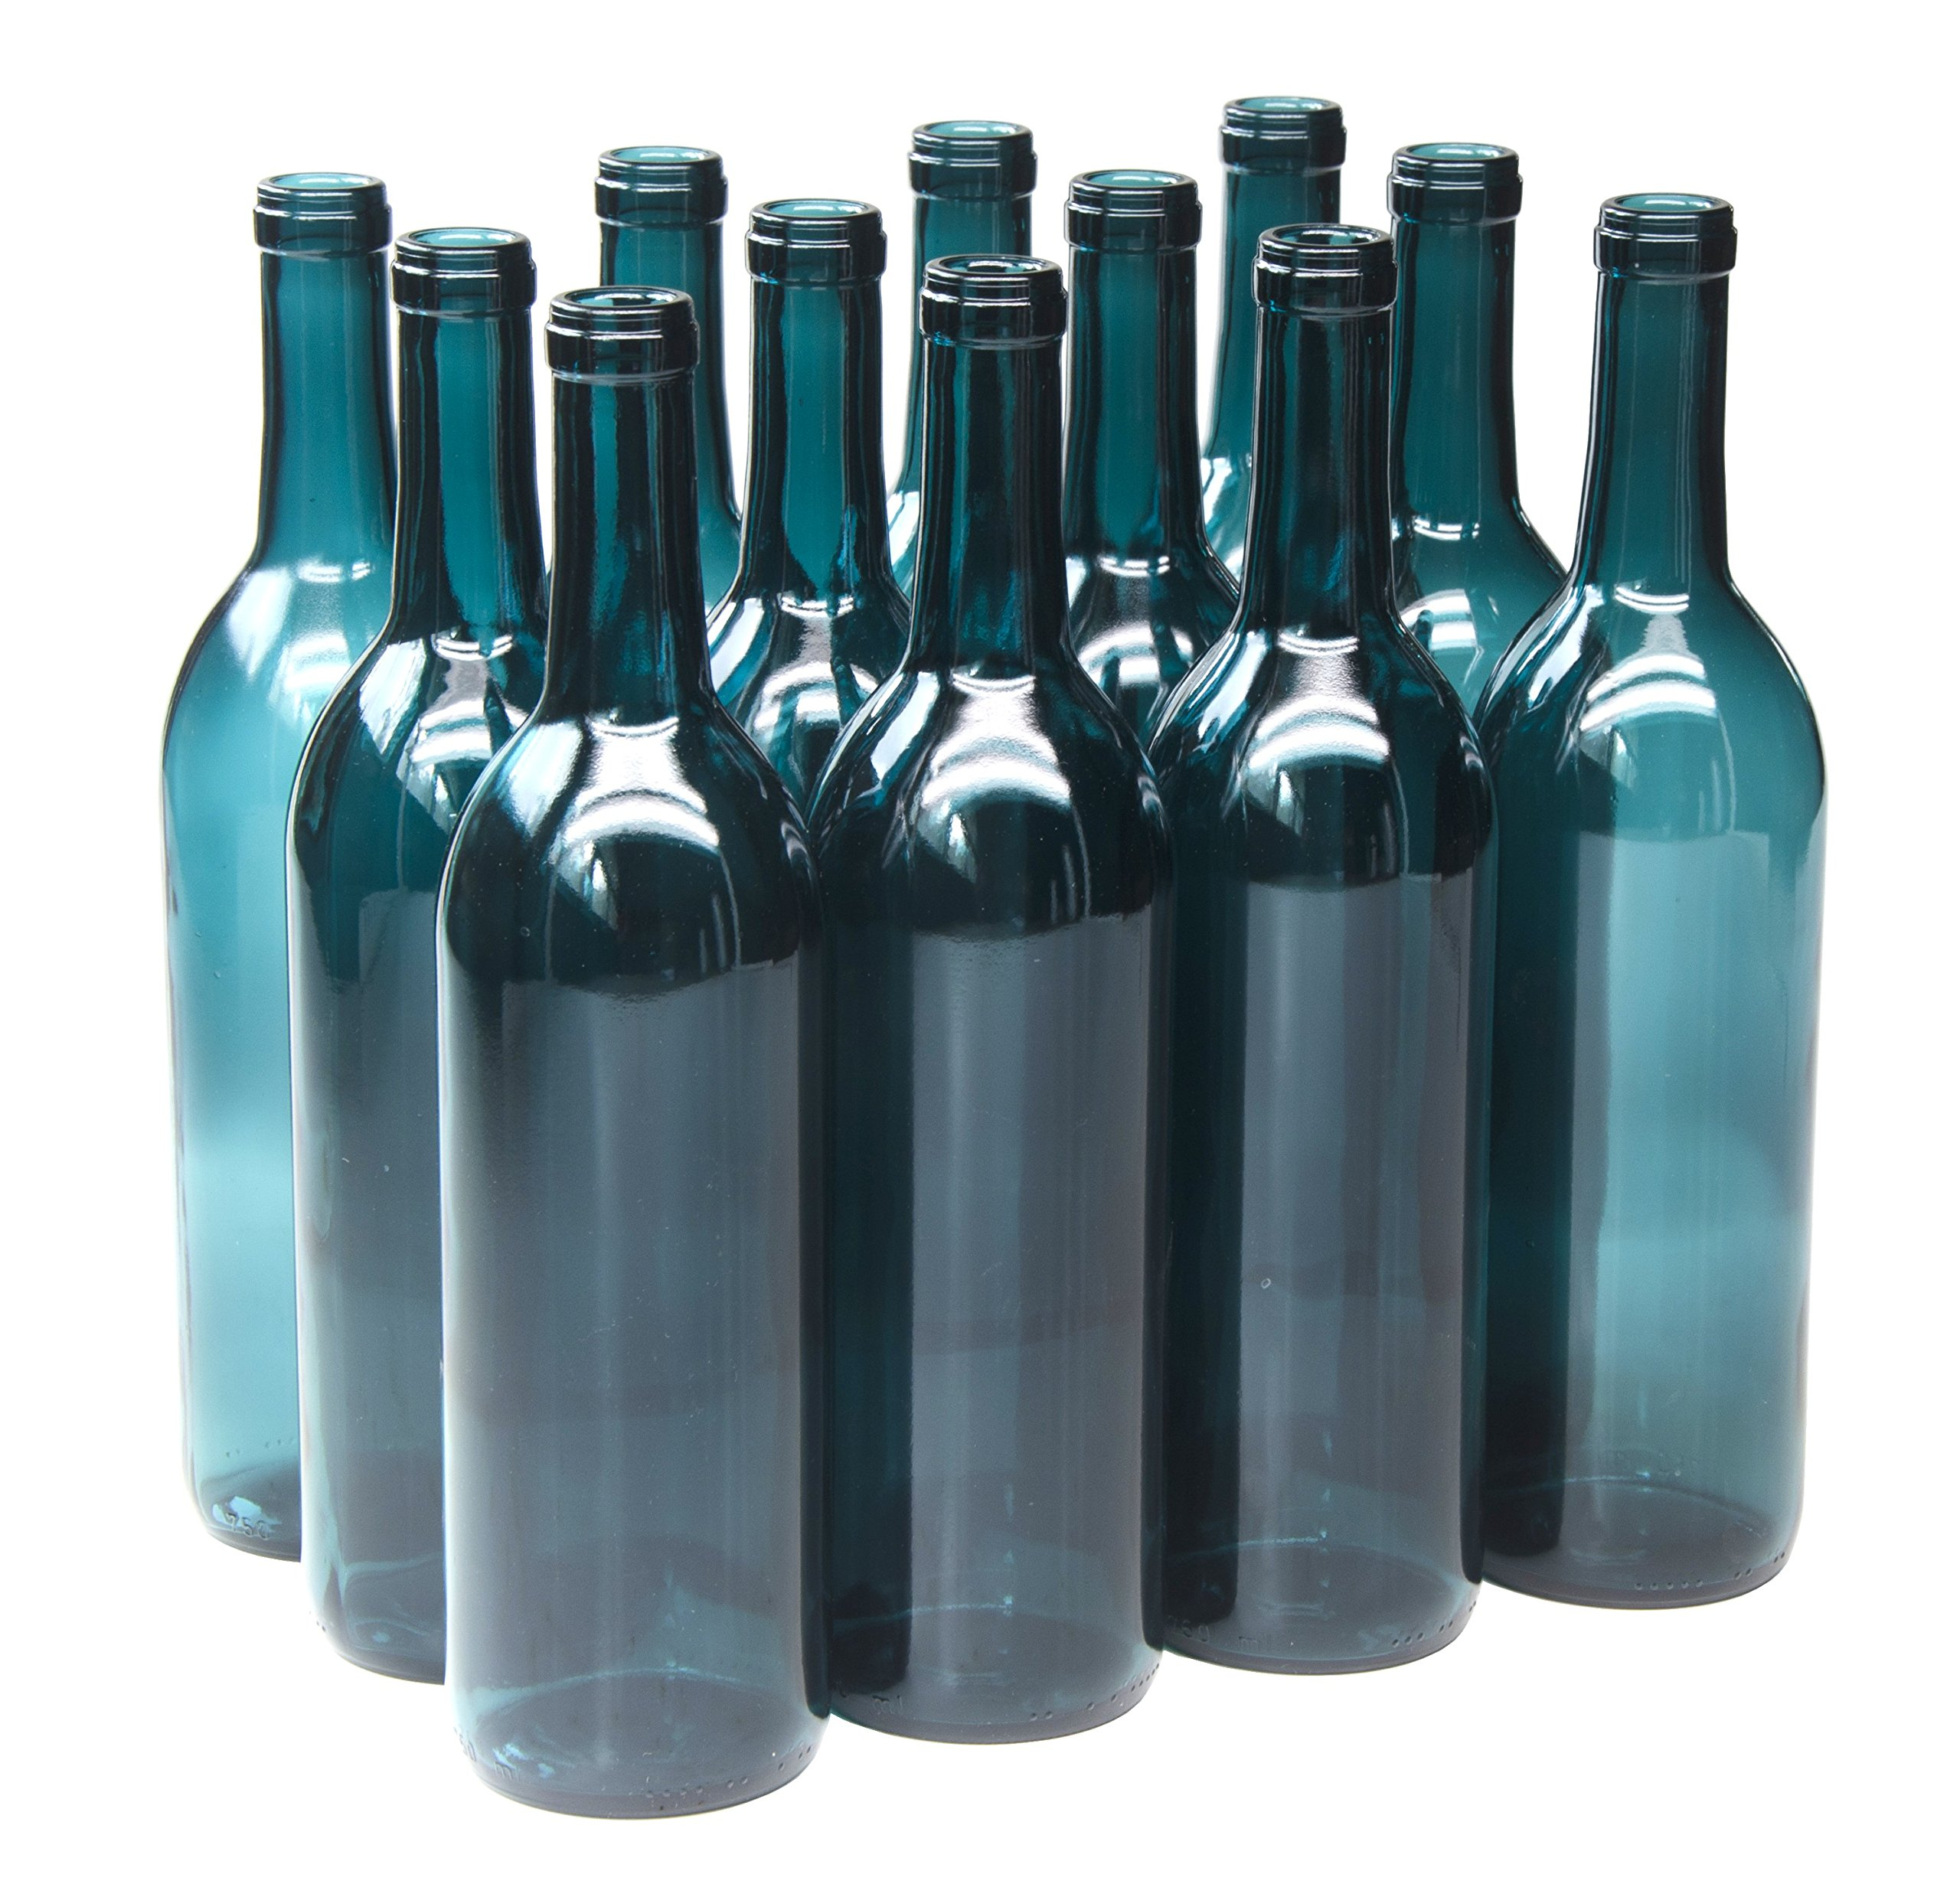 North Mountain Supply 750ml Glass Bordeaux Wine Bottle Flat-Bottomed Cork Finish - Case of 12 - Limited Edition Blue-Green by North Mountain Supply (Image #1)